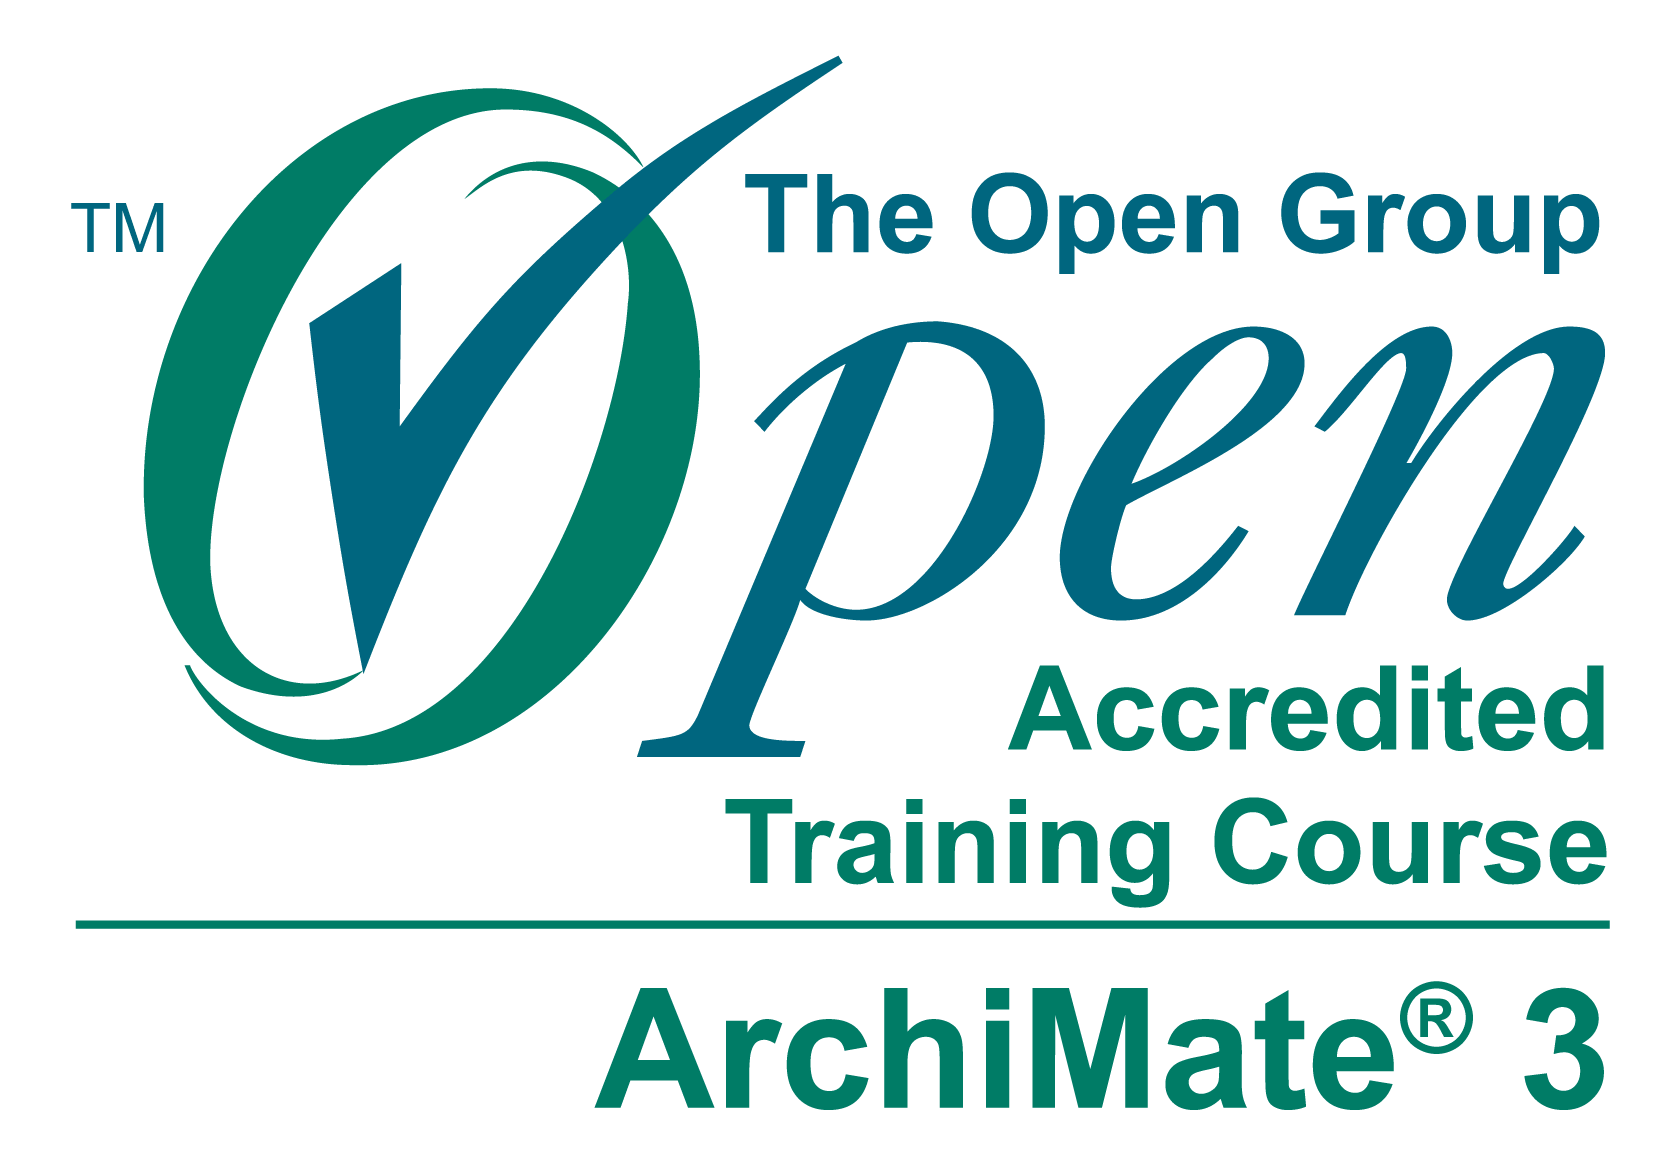 A comprehensive course on all you need to master ArchiMate® Level 1 Foundation and Level 2 Practitioner. The Agora Insights ArchiMate® Master Class is accredited by The Open Group.